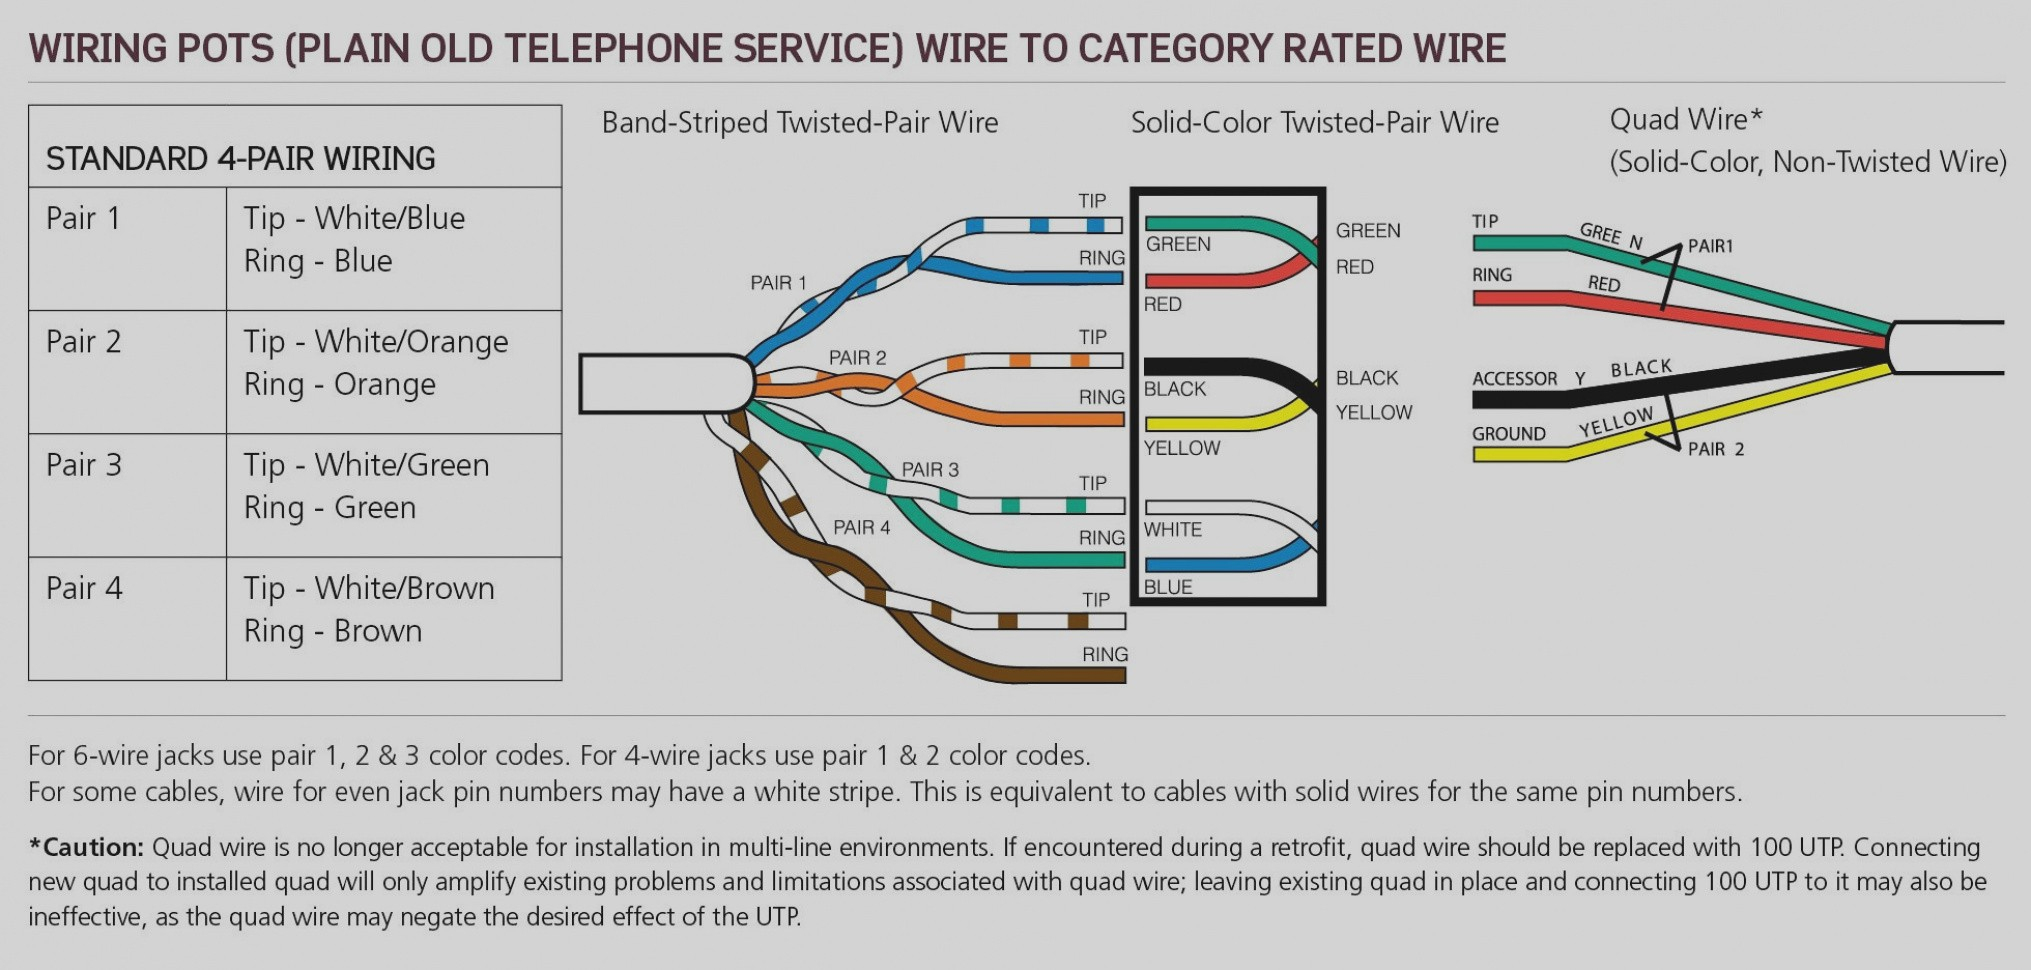 Dsl Wiring Requirements - Wiring Diagram Data Oreo - Phone Wiring Diagram